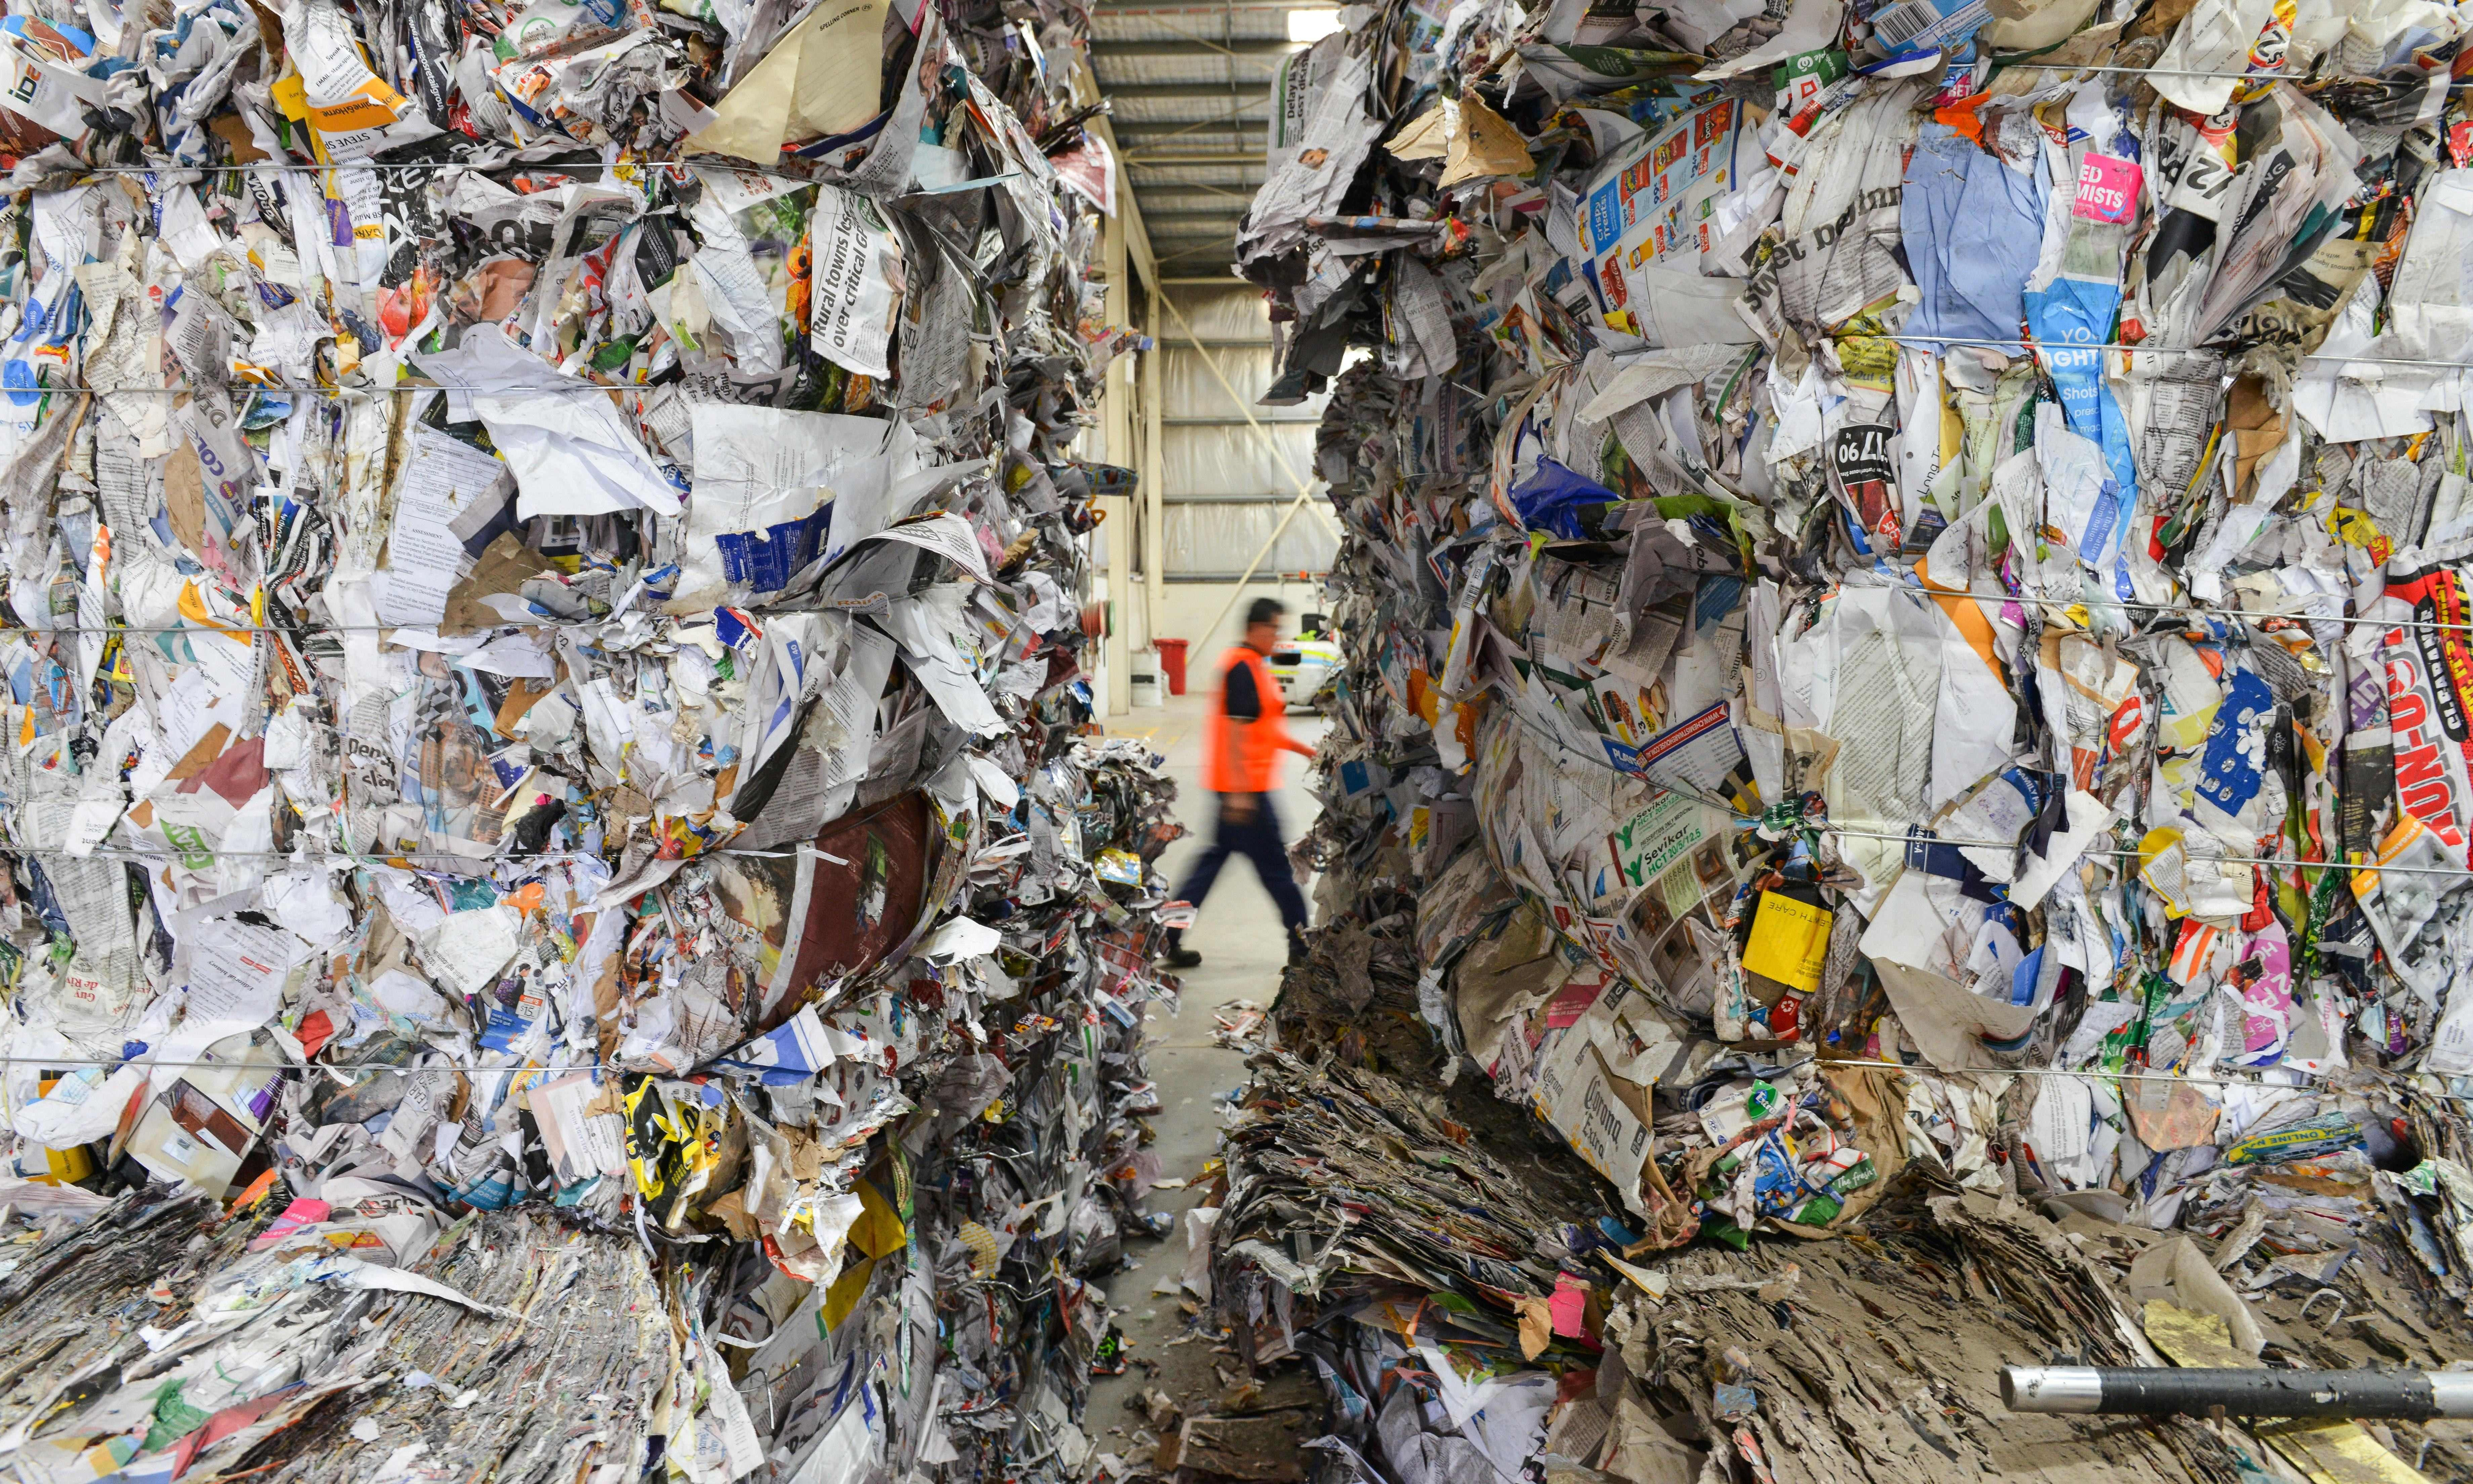 Australia will ban export of recyclable waste 'as soon as practicable', PM vows